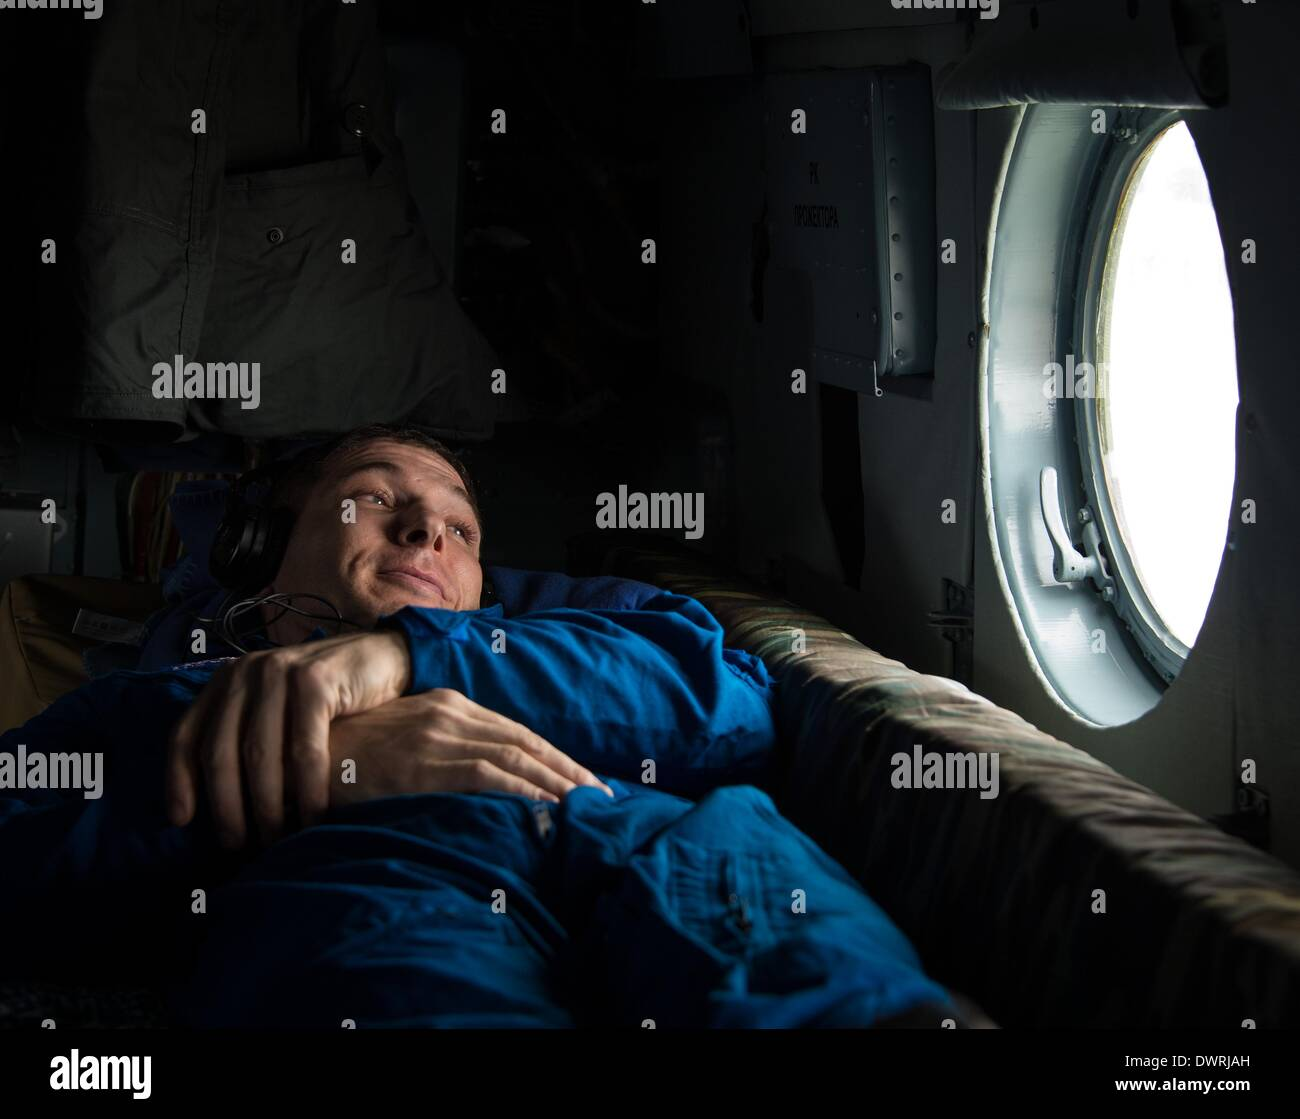 Karaganda airport, Kazakhstan. 11th March, 2014. International Space State Expedition 38 astronaut Mike Hopkins of NASA looks out the window of the Russian MI-8 helicopter after landing in a Soyuz TMA-10M spacecraft March 11, 2014 near the town of Zhezkazgan, Kazakhstan. Hopkins, Kotov and Ryazanskiy returned to Earth after five and a half months onboard the International Space Station. Credit:  Planetpix/Alamy Live News - Stock Image